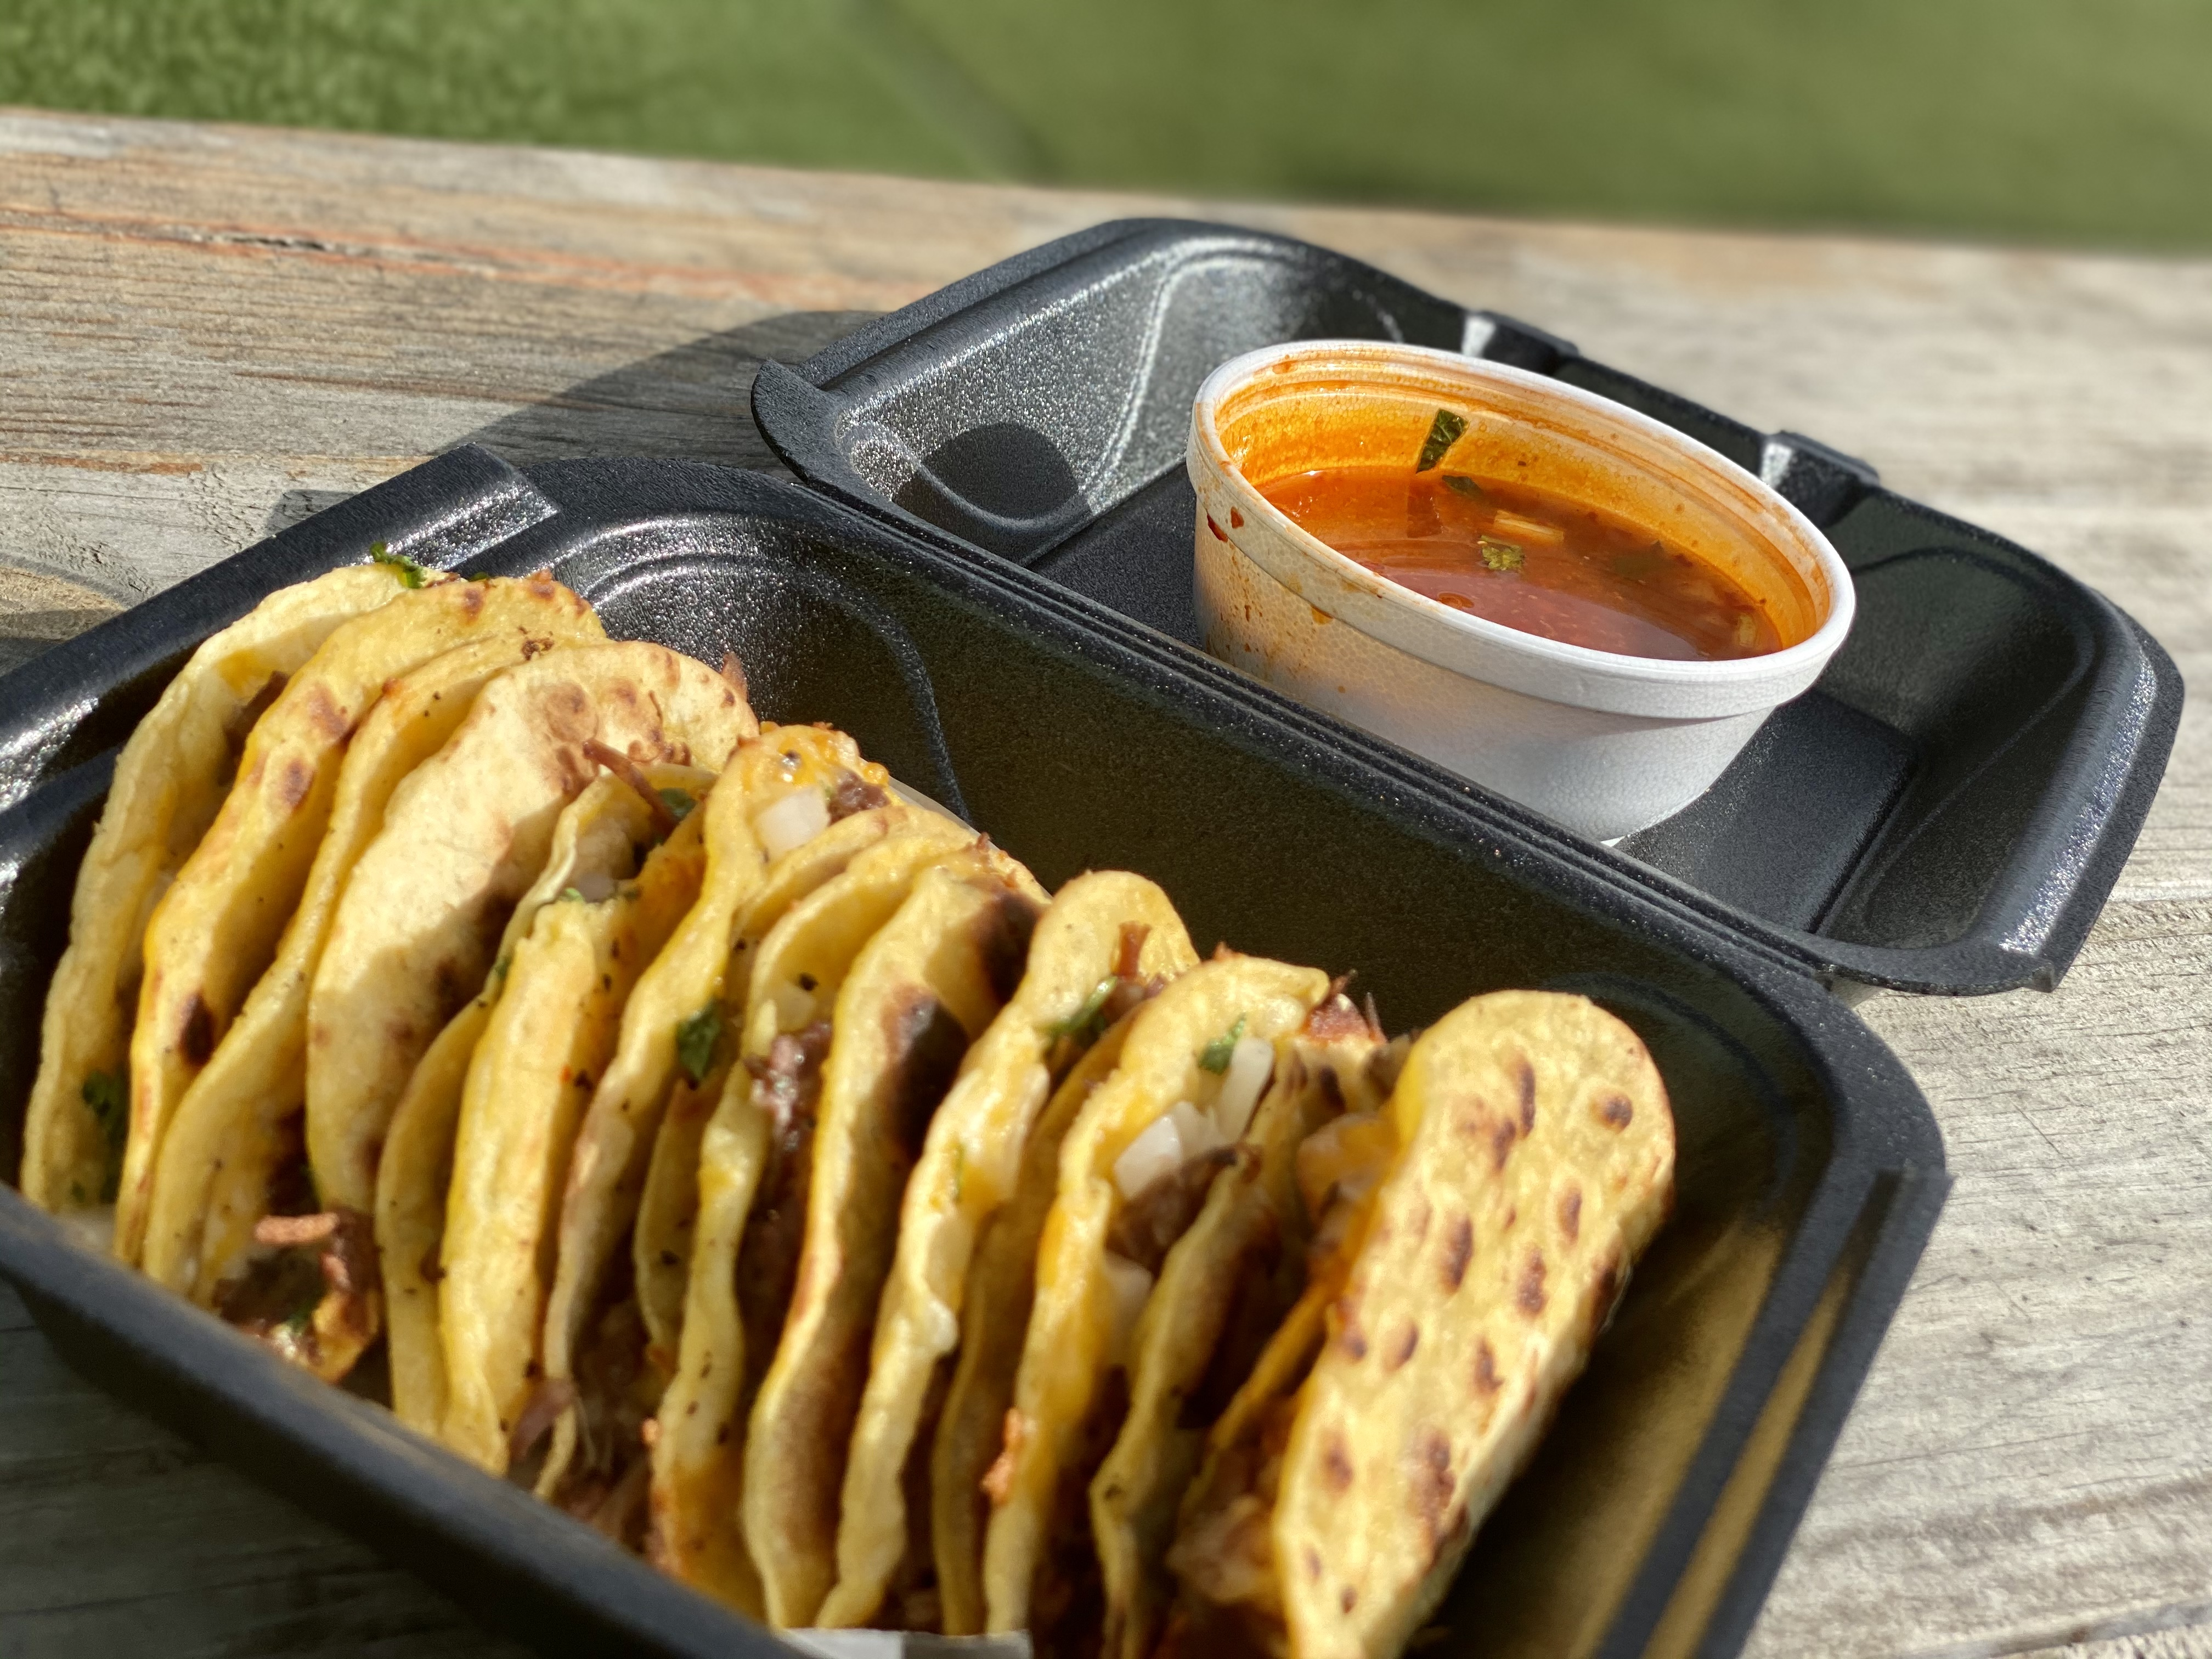 Six birria tacos sit neatly in a row inside a black styrofoam takeout container. A cup of red consomme sits beside the tacos in the top lid of the container